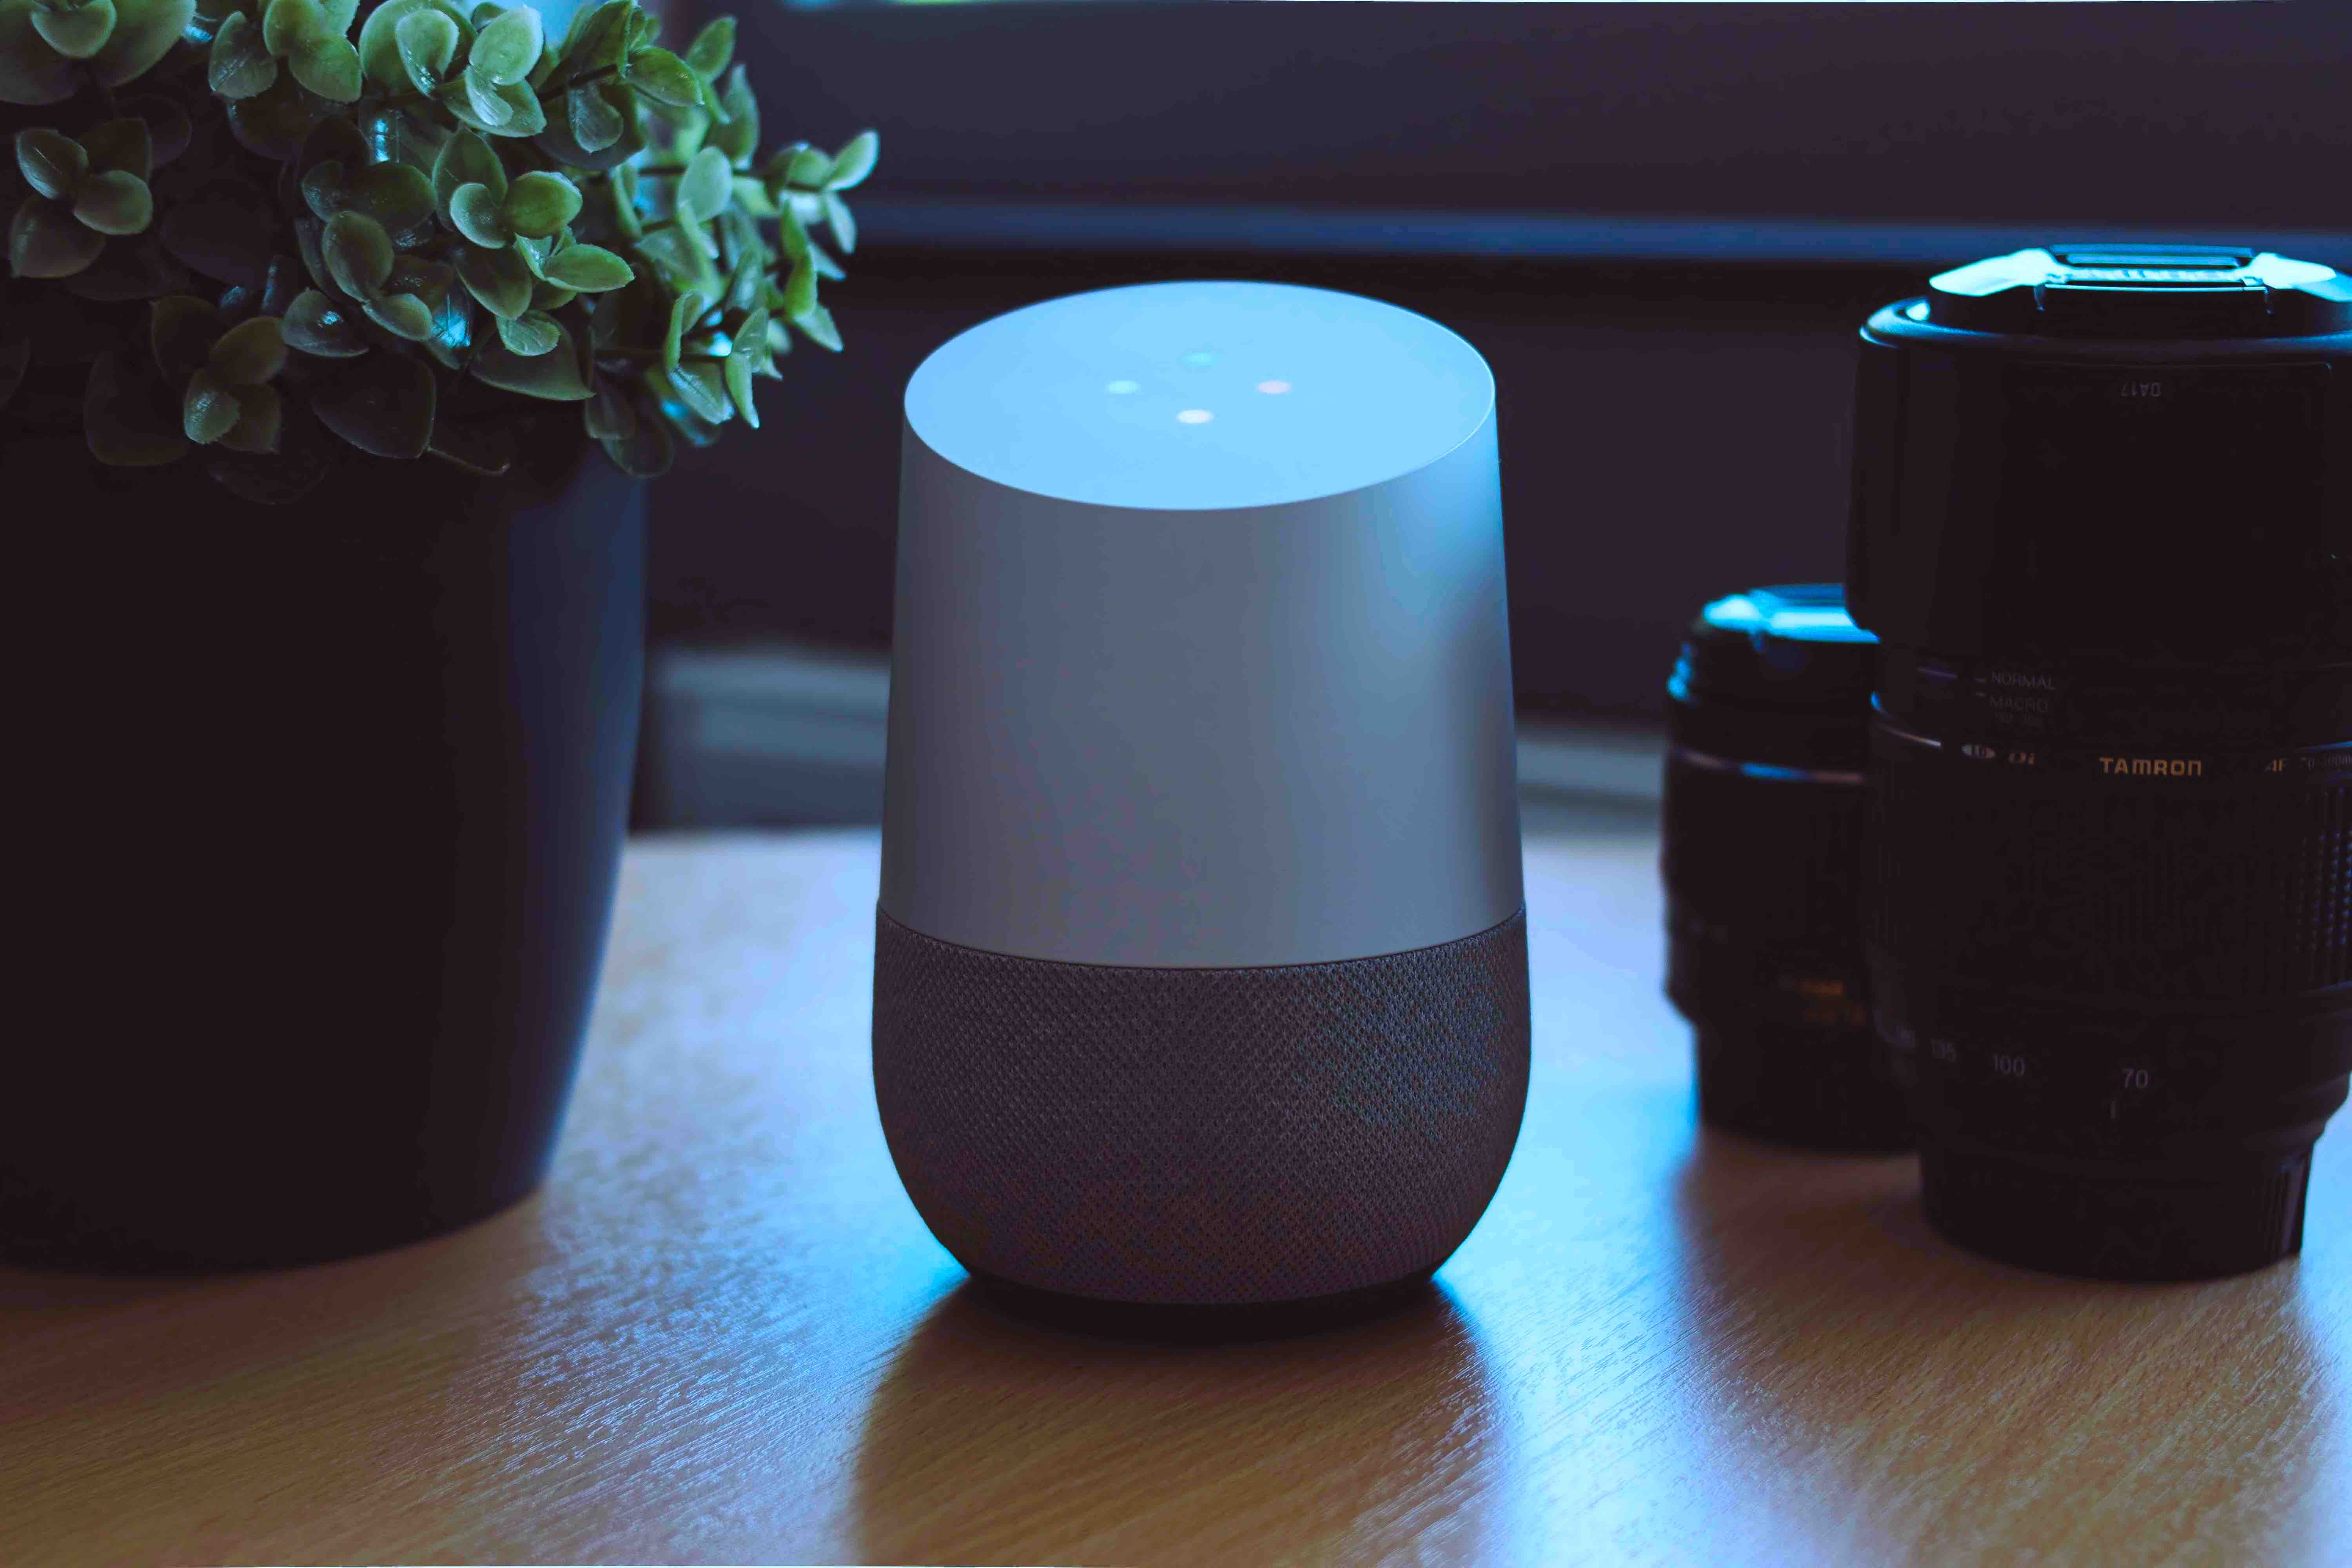 Voice Search optimisation on Google Home - UPPER SIDE